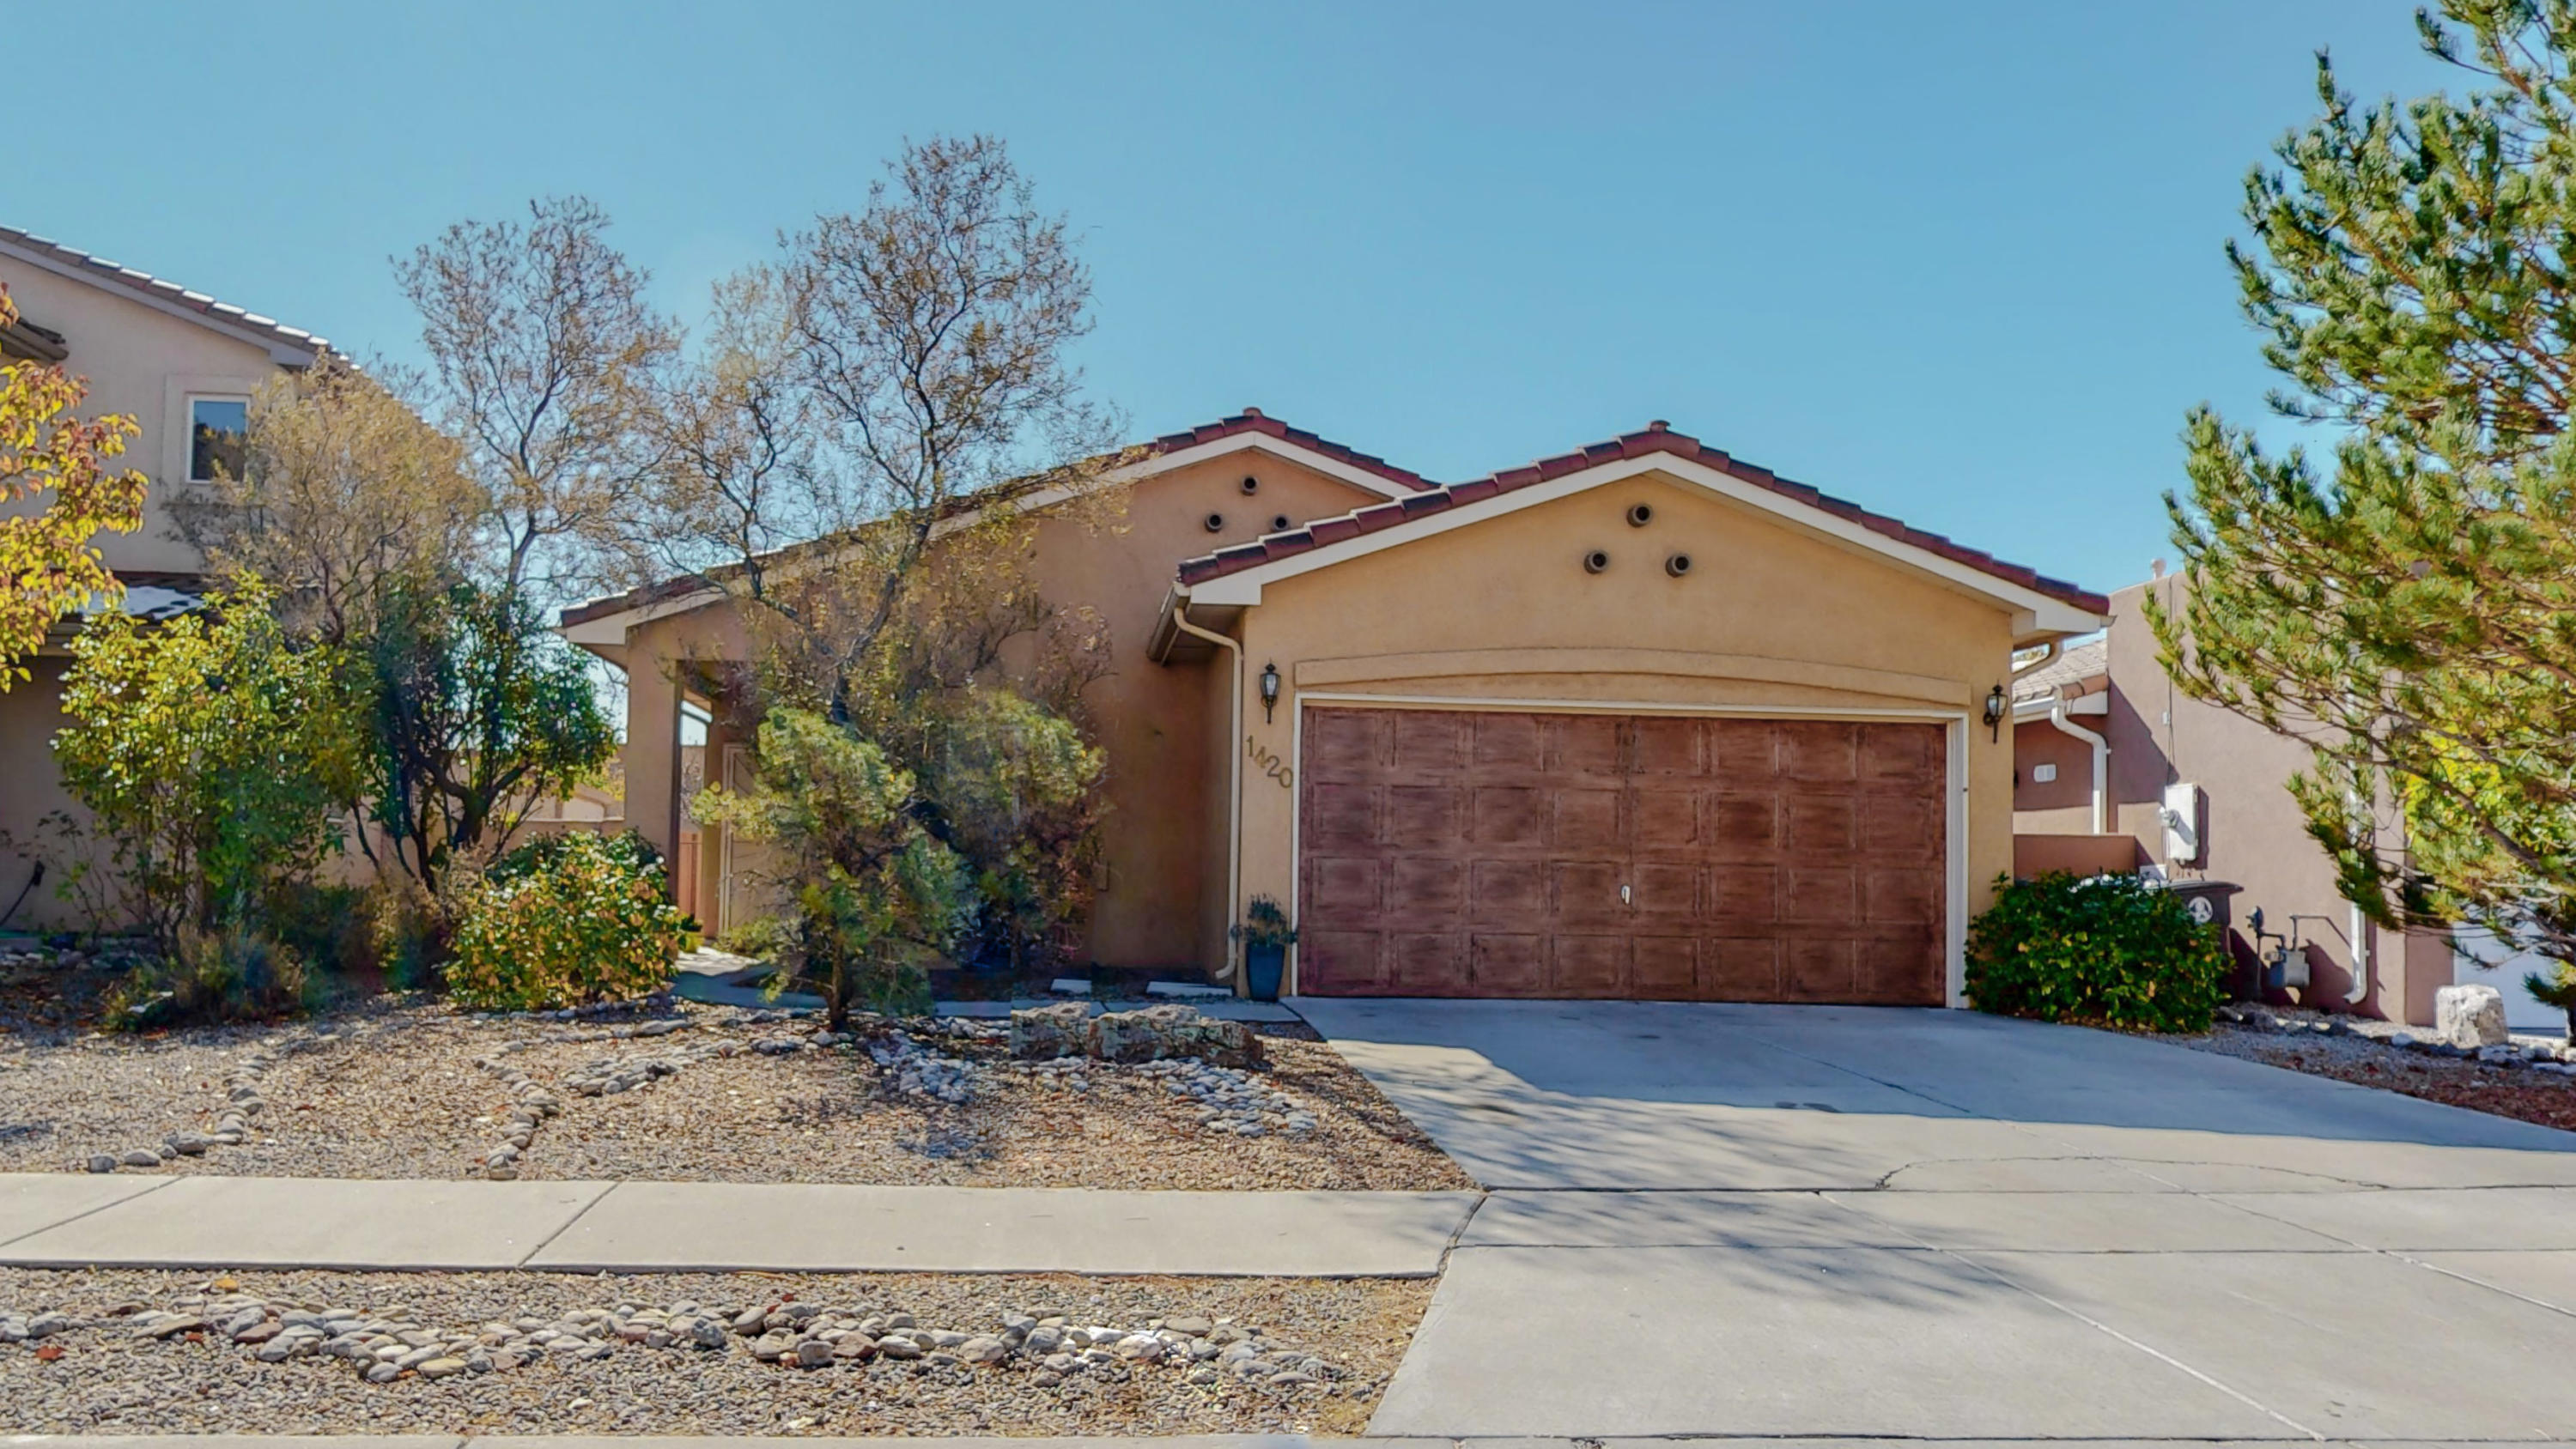 Welcome Home!  Rare buying opportunity for this beautiful light and bright 2 bedroom, 2 bath, in the Vista Del Norte Neighborhood. Home features REFRIGERATED AIR, open concept floor plan, tile roof, Great local parks, paved public trails, and amazingly close to the Balloon Fiesta Park.